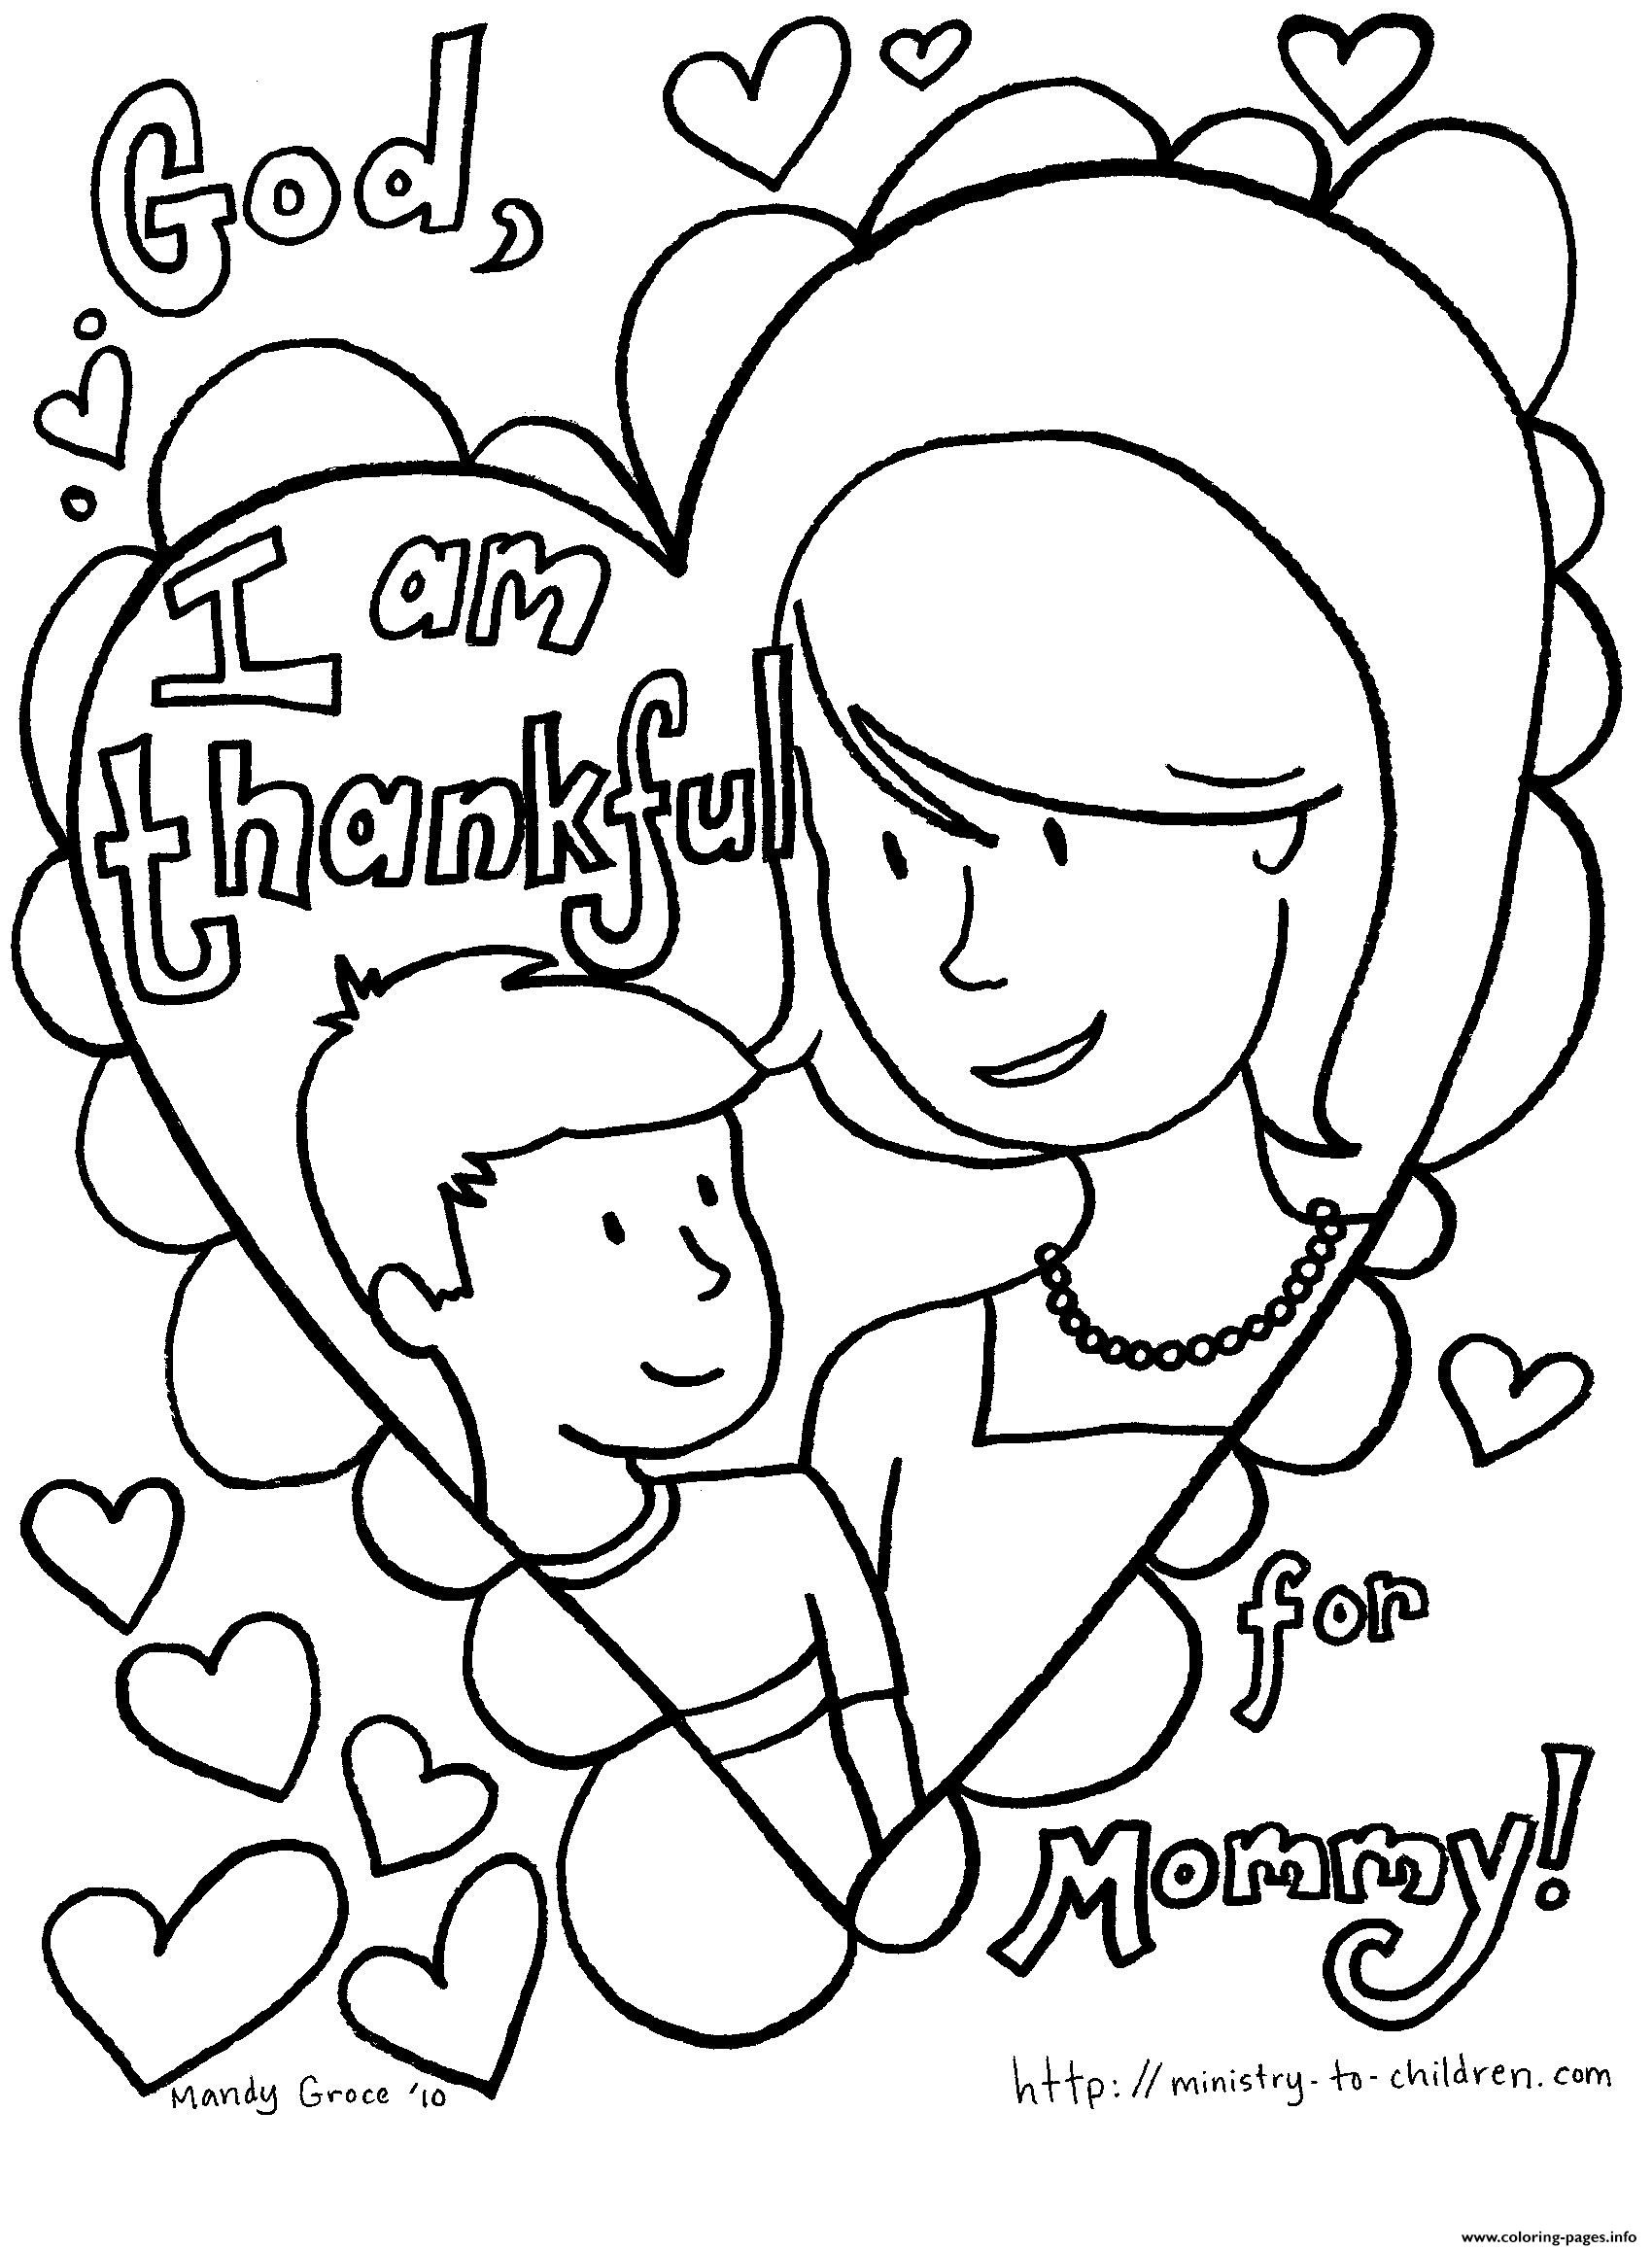 Mothers Day i am thankful for mommy coloring pages